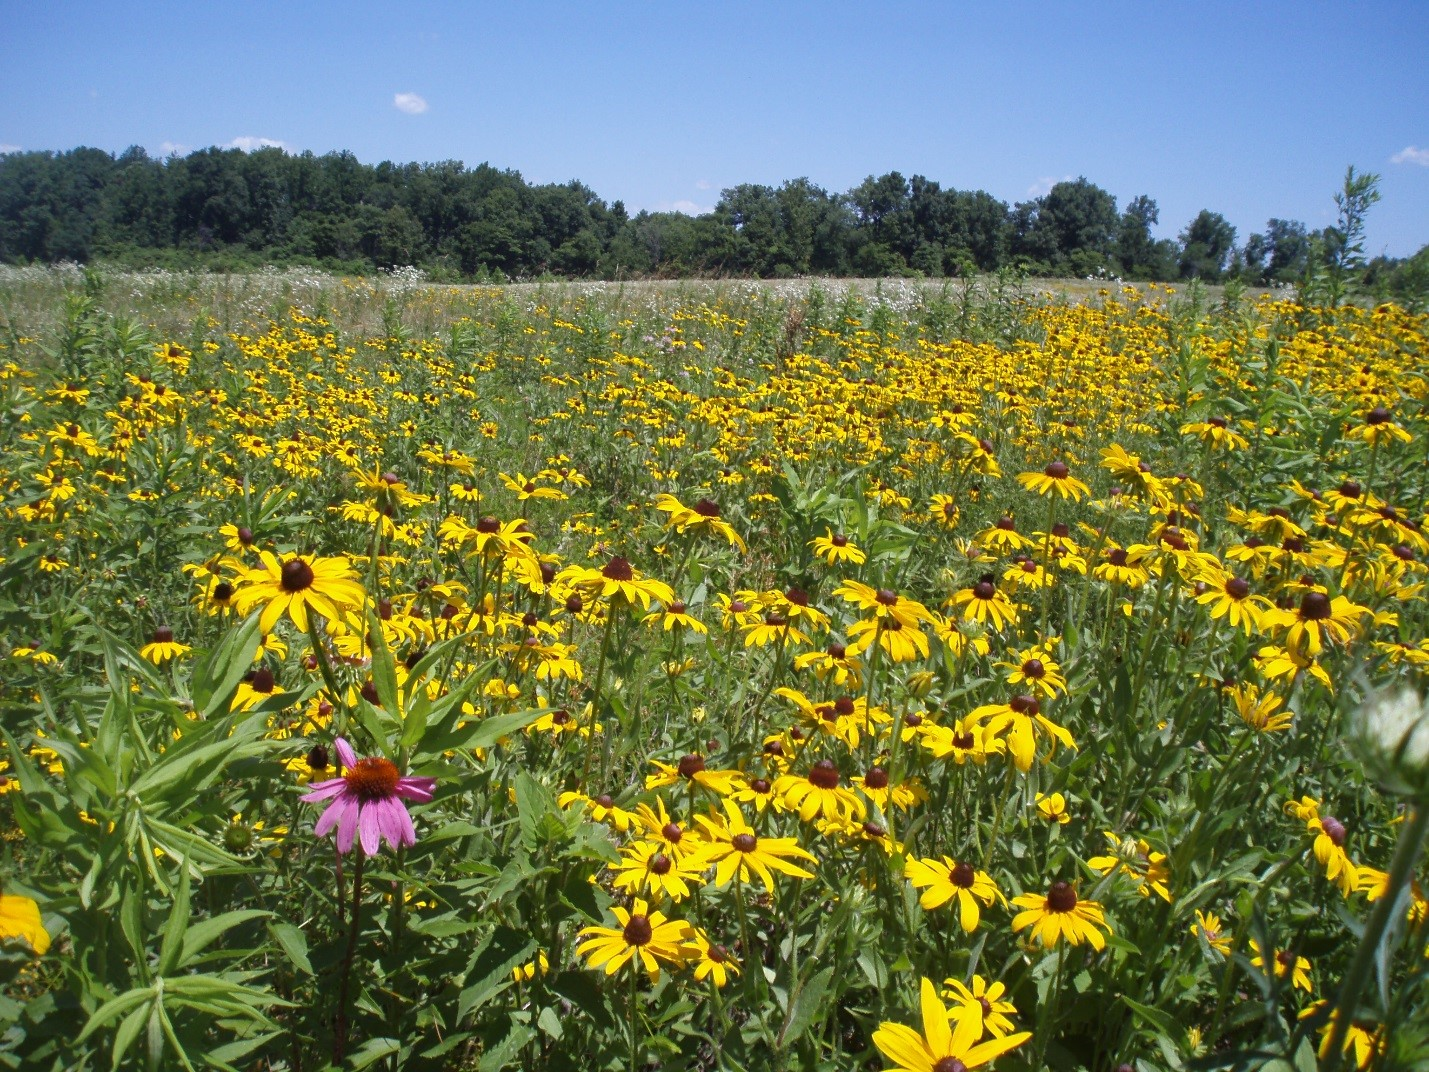 A field of black-eyed susan with birds flying above it.